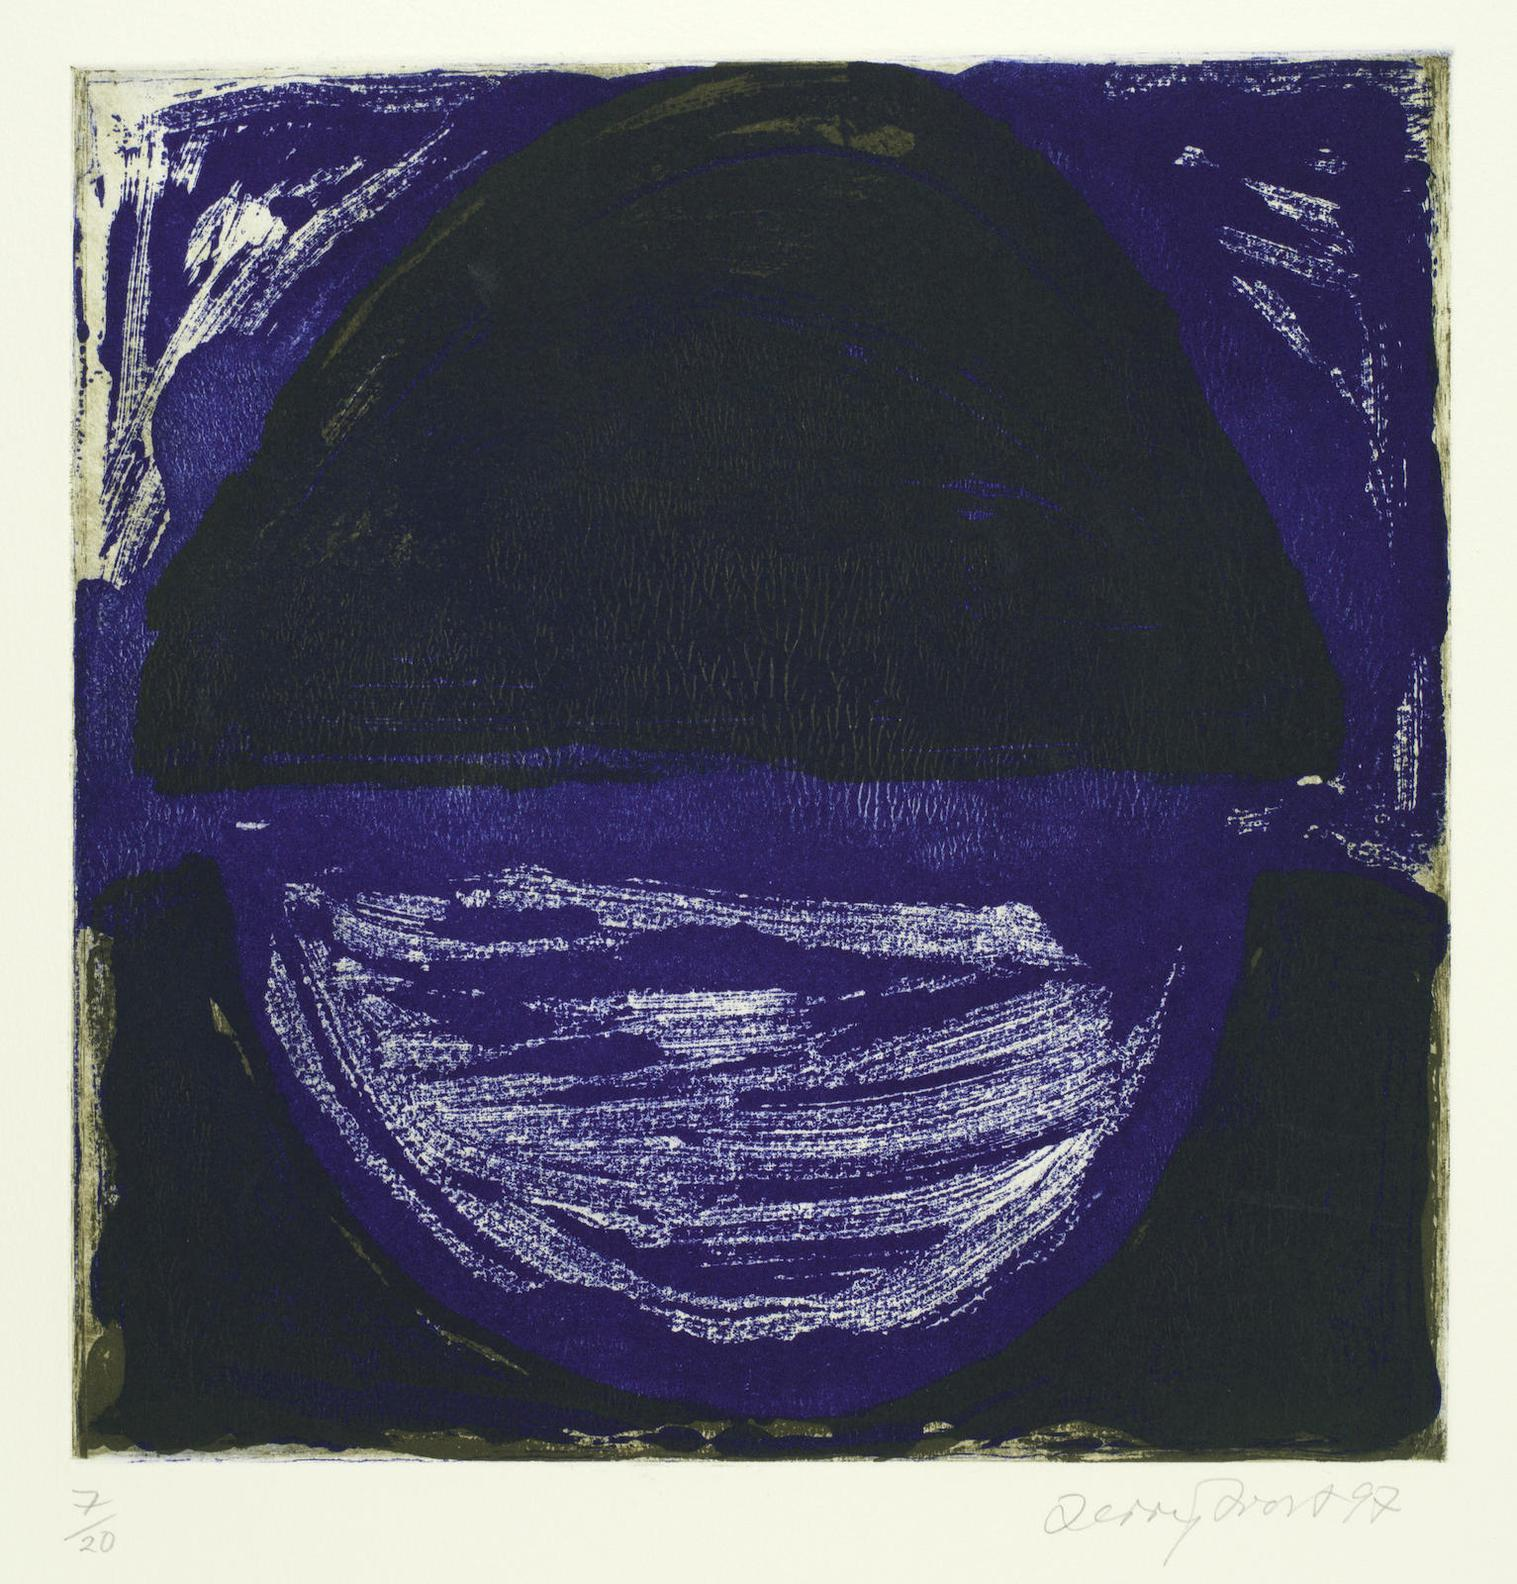 Sir Terry Frost - Madron Blue Ii, From Madron Blue Suite (Kemp 162)-1997